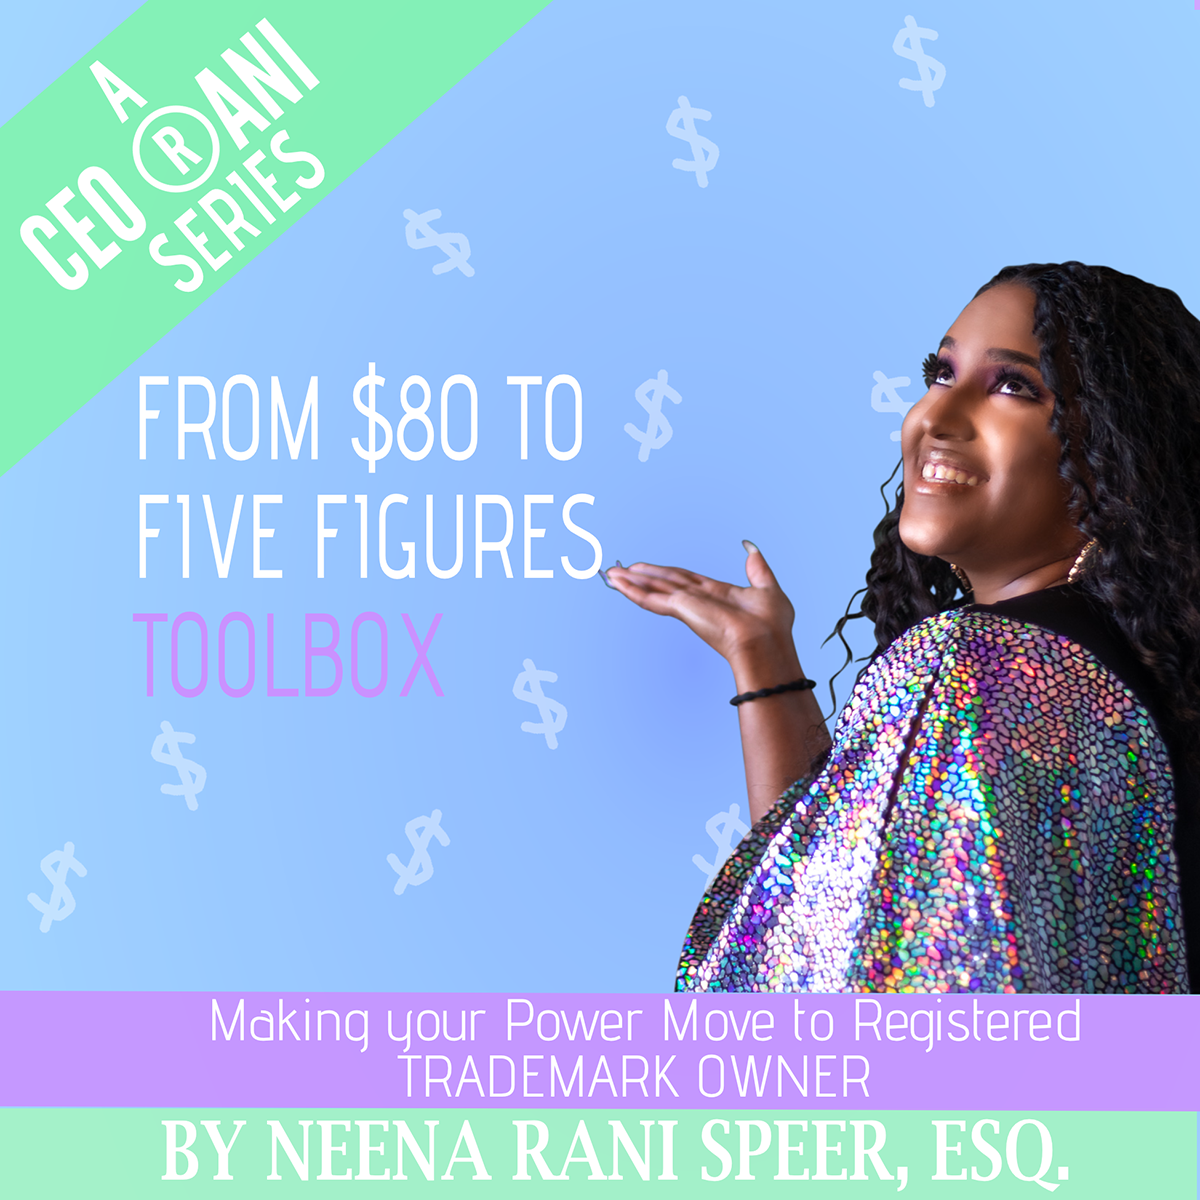 From 80 to Five Figures Toolbox - Neena The L.A.S.T. Brand